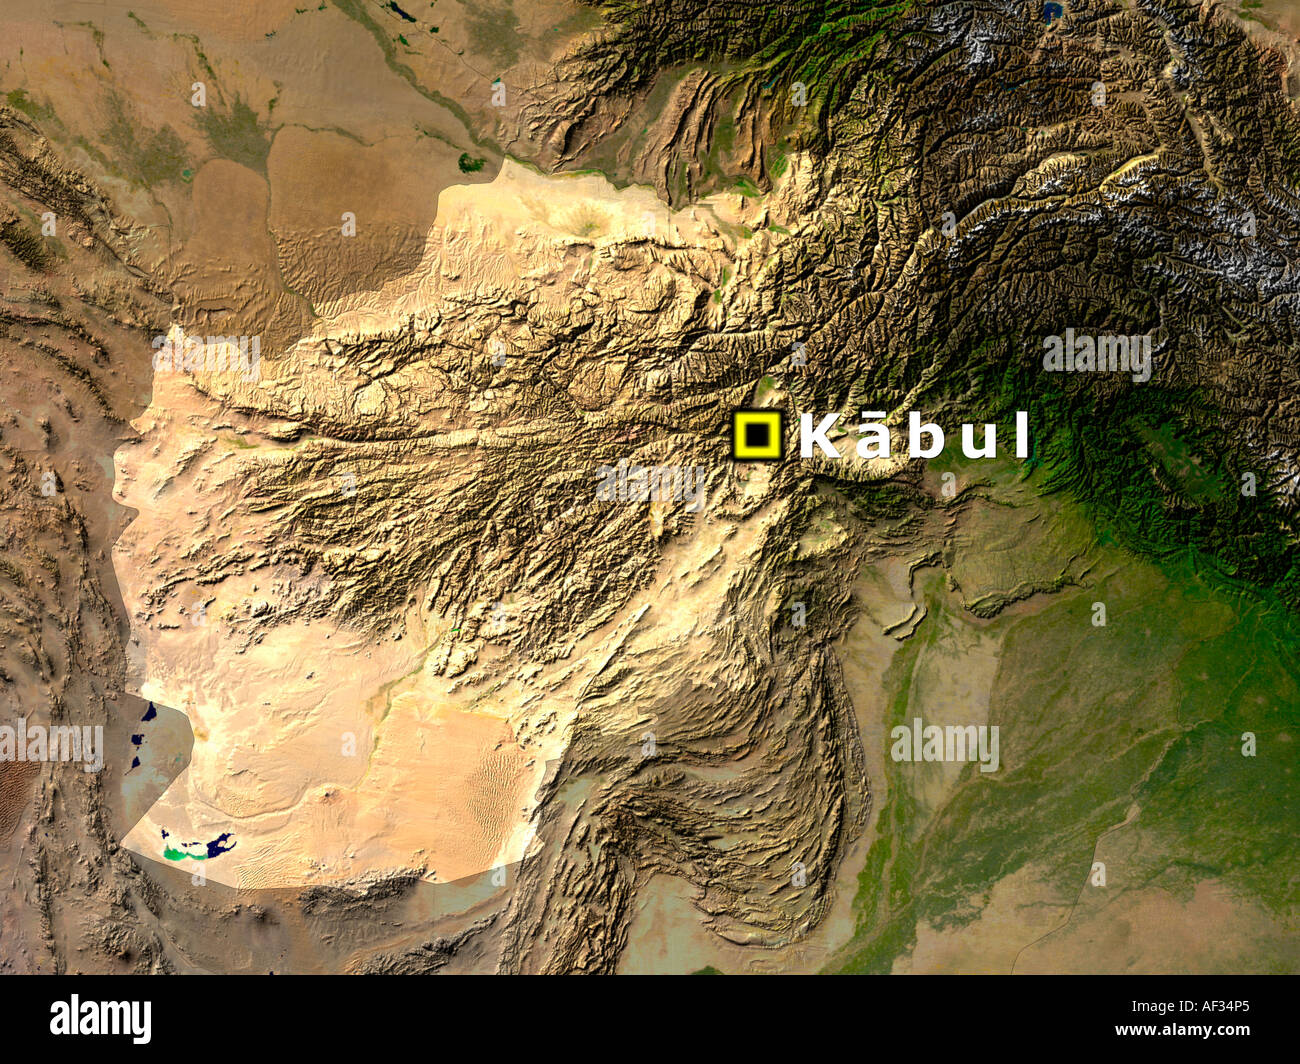 Satellite image of afghanistan with kabul highlighted stock photo satellite image of afghanistan with kabul highlighted gumiabroncs Image collections